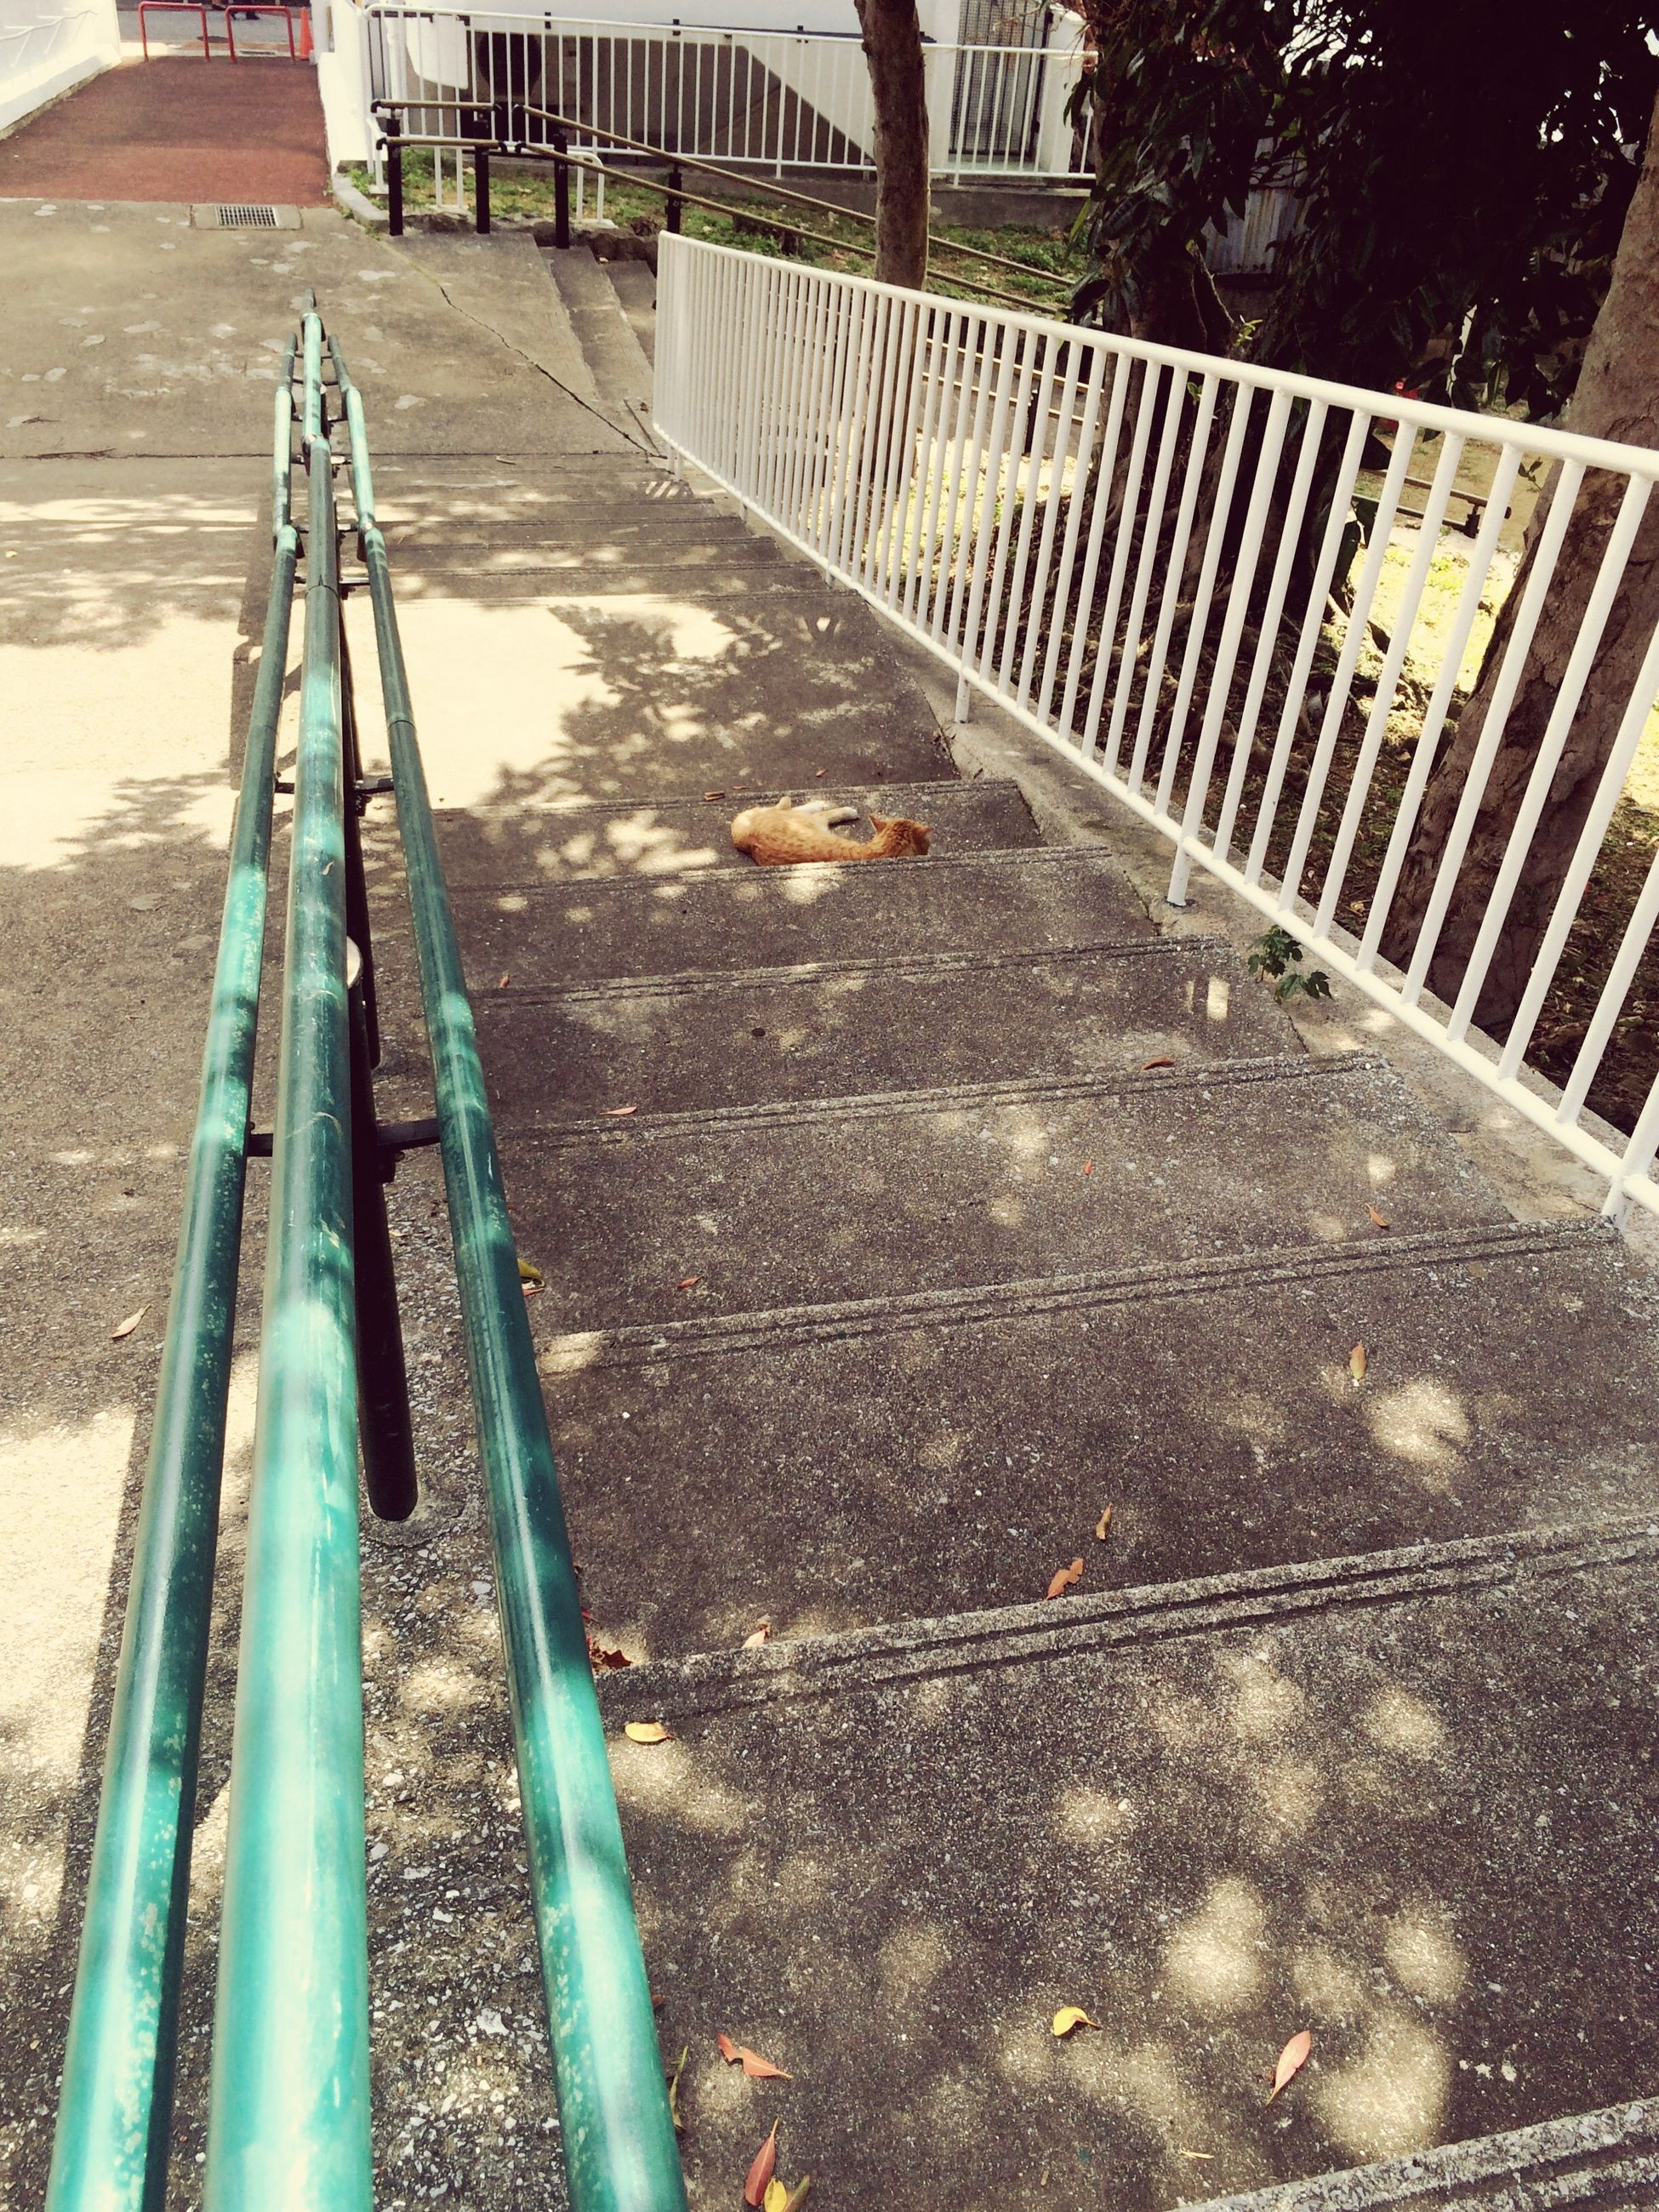 animal themes, one animal, domestic animals, pets, high angle view, mammal, metal, dog, bird, animals in the wild, transportation, railing, day, outdoors, wildlife, railroad track, built structure, sunlight, no people, street